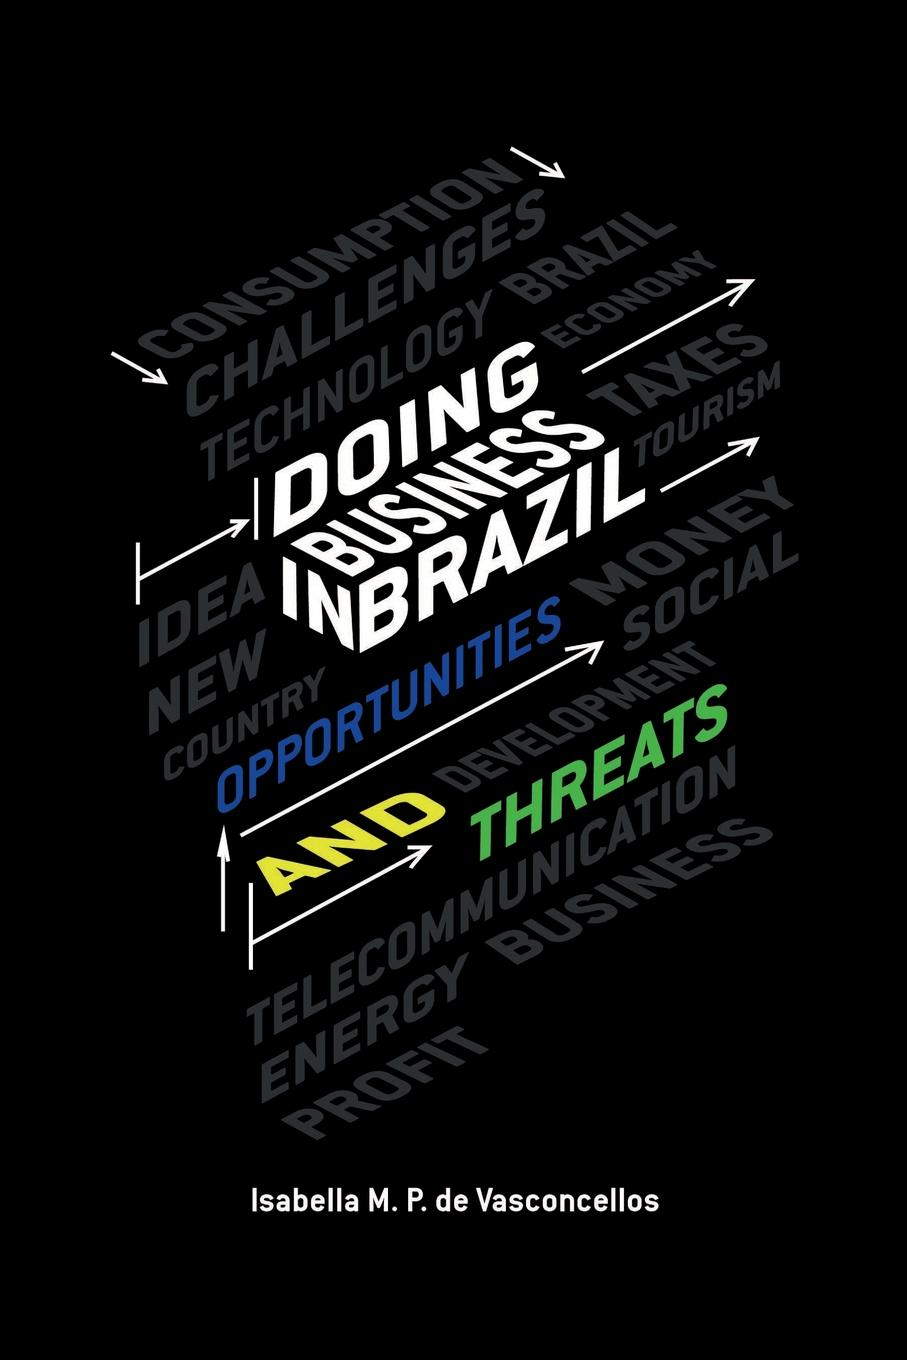 DOING BUSINESS IN BRAZIL OPPORTUNITIES AND THREATS Brazil represents a consumer market of 210 million people, a great...